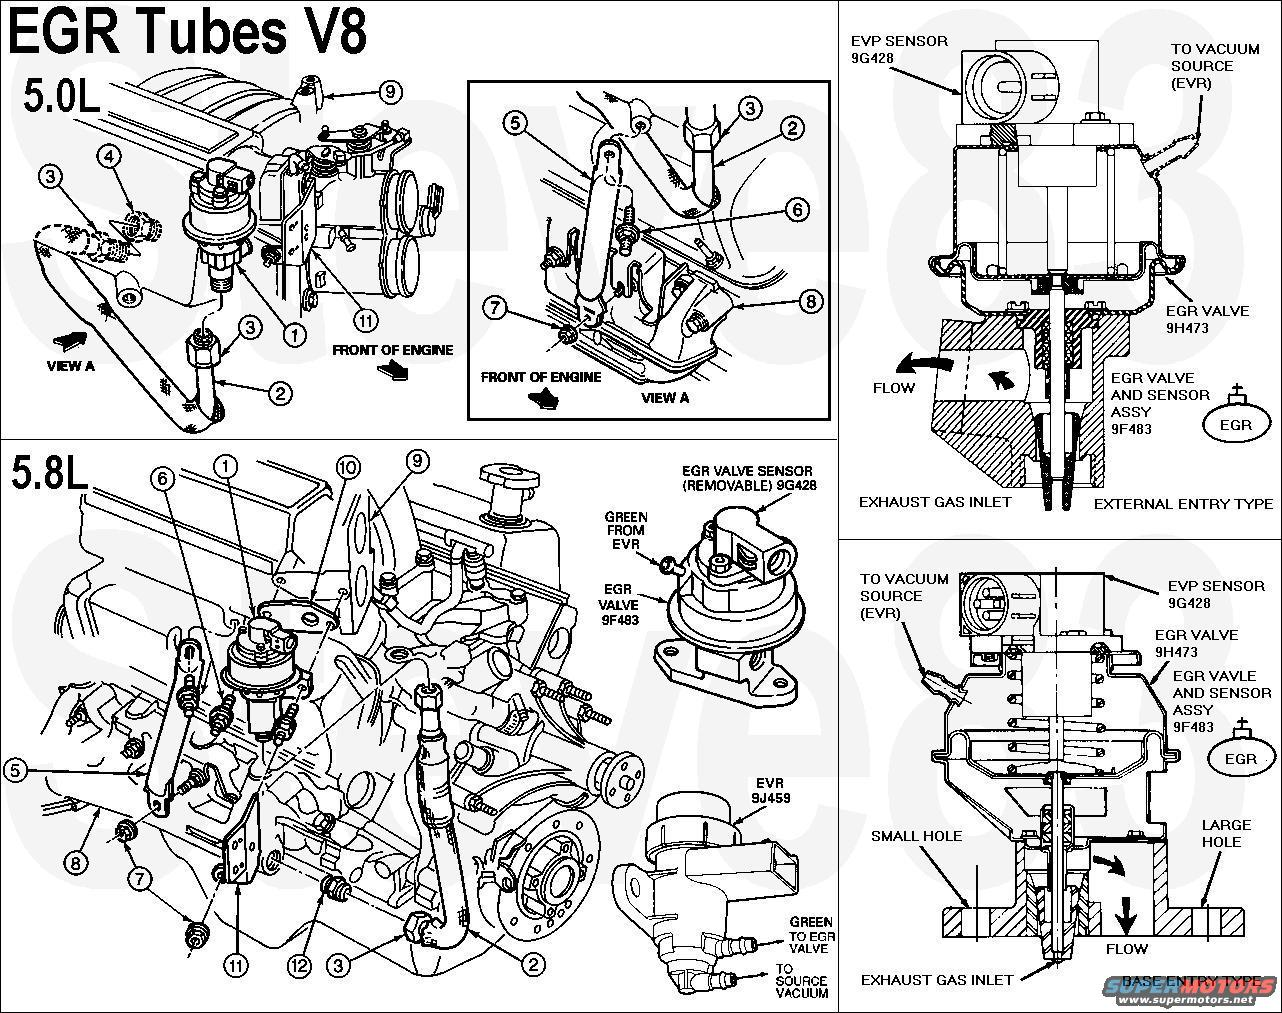 Need Vacuum Diagram For 1988 Dodge Ram 50 With 20 Engine With